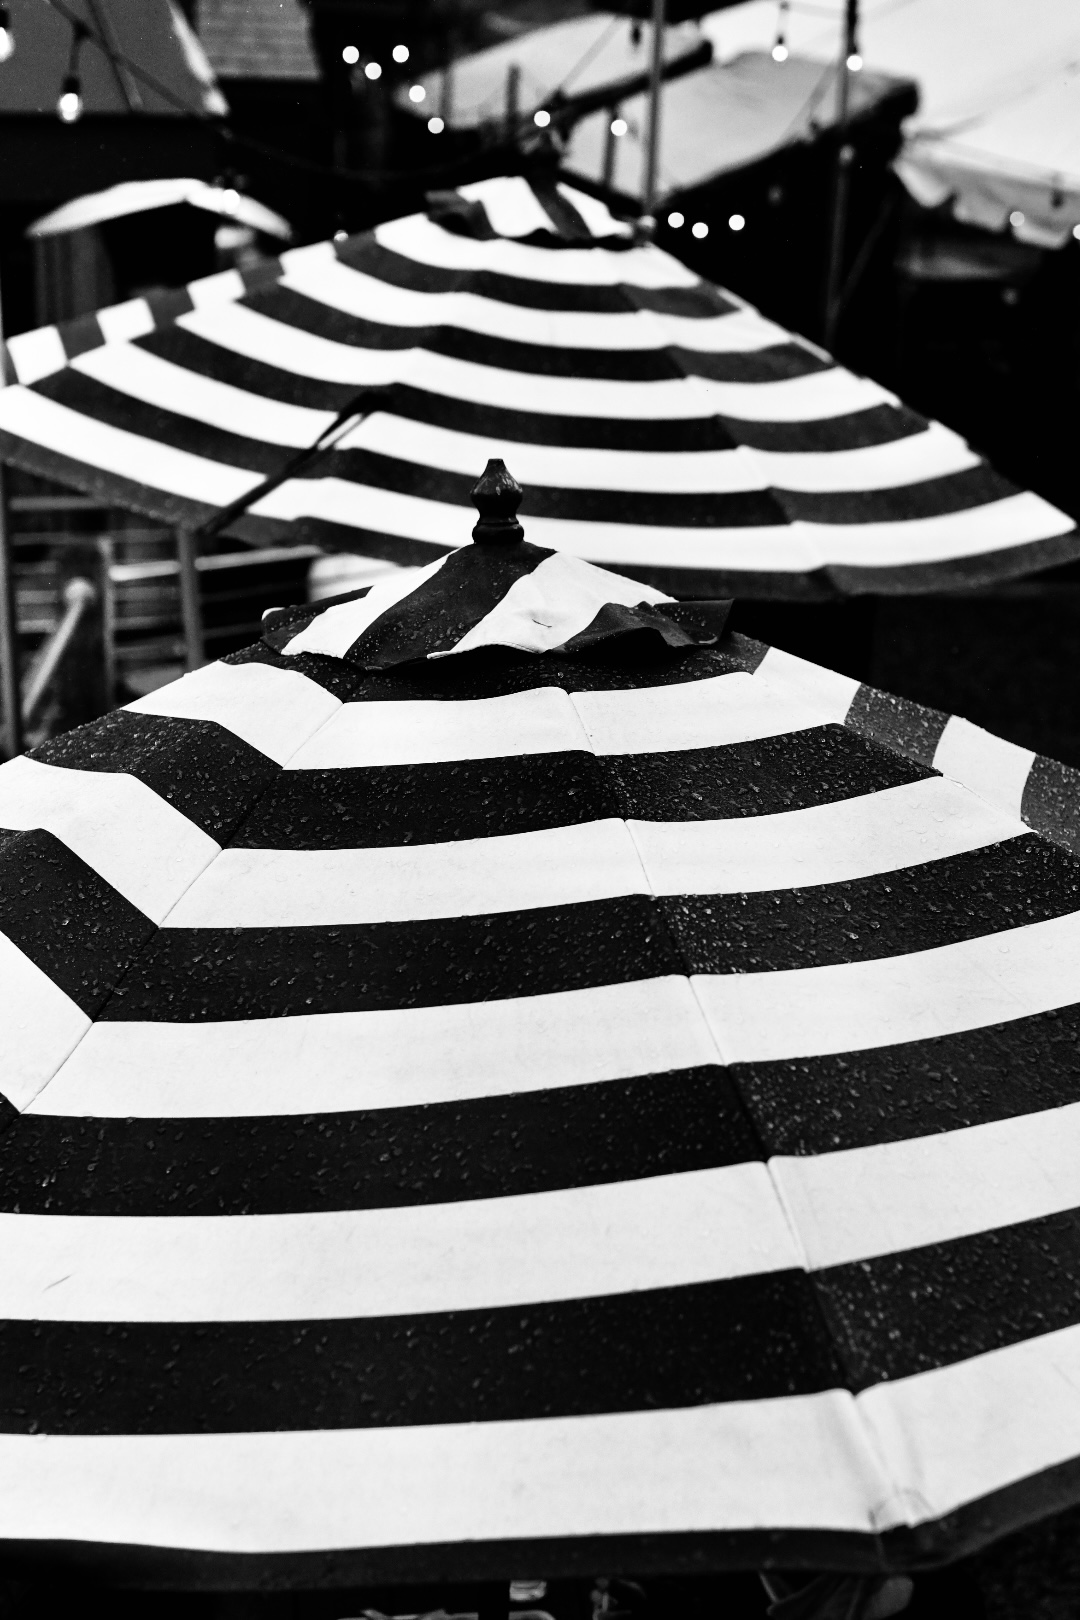 The tops of two black and white striped umbrellas in the rain. 2021. Taryn Okesson. Digital Photography. Littleton, New Hampshire.